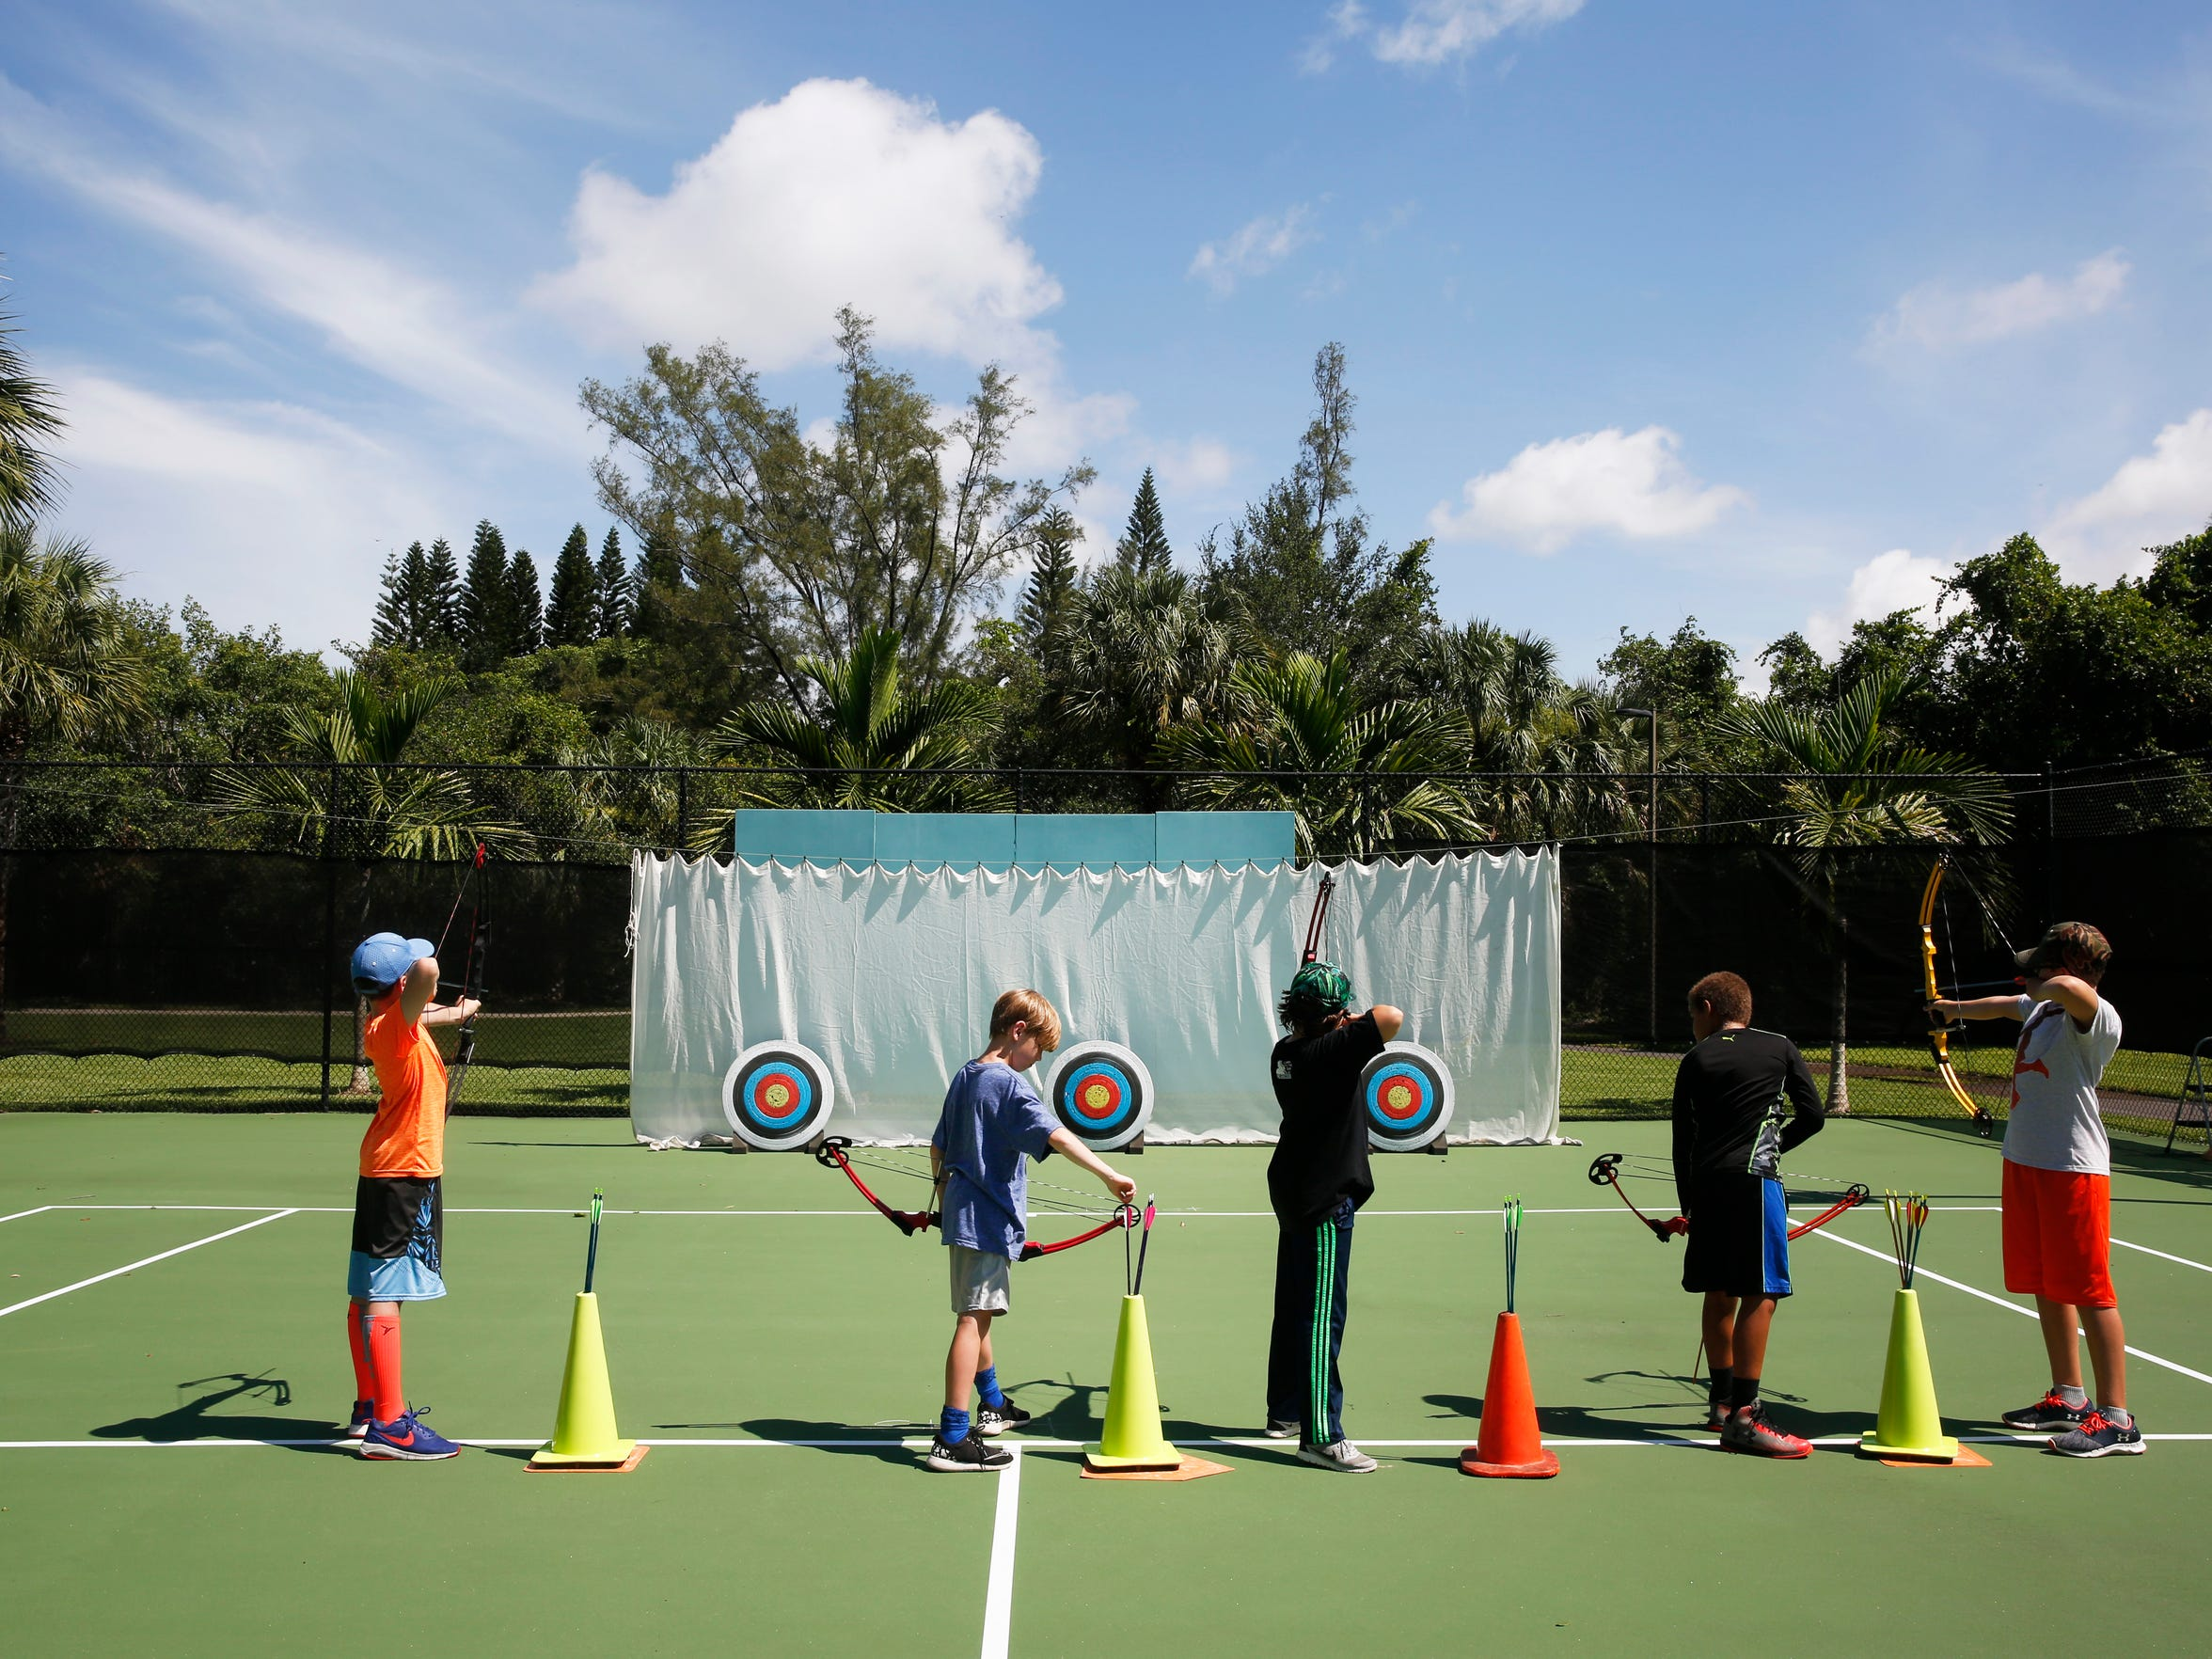 Campers take aim at targets during an archery lesson on the tennis courts at Anthony Park on Wednesday, Aug. 2, 2017.